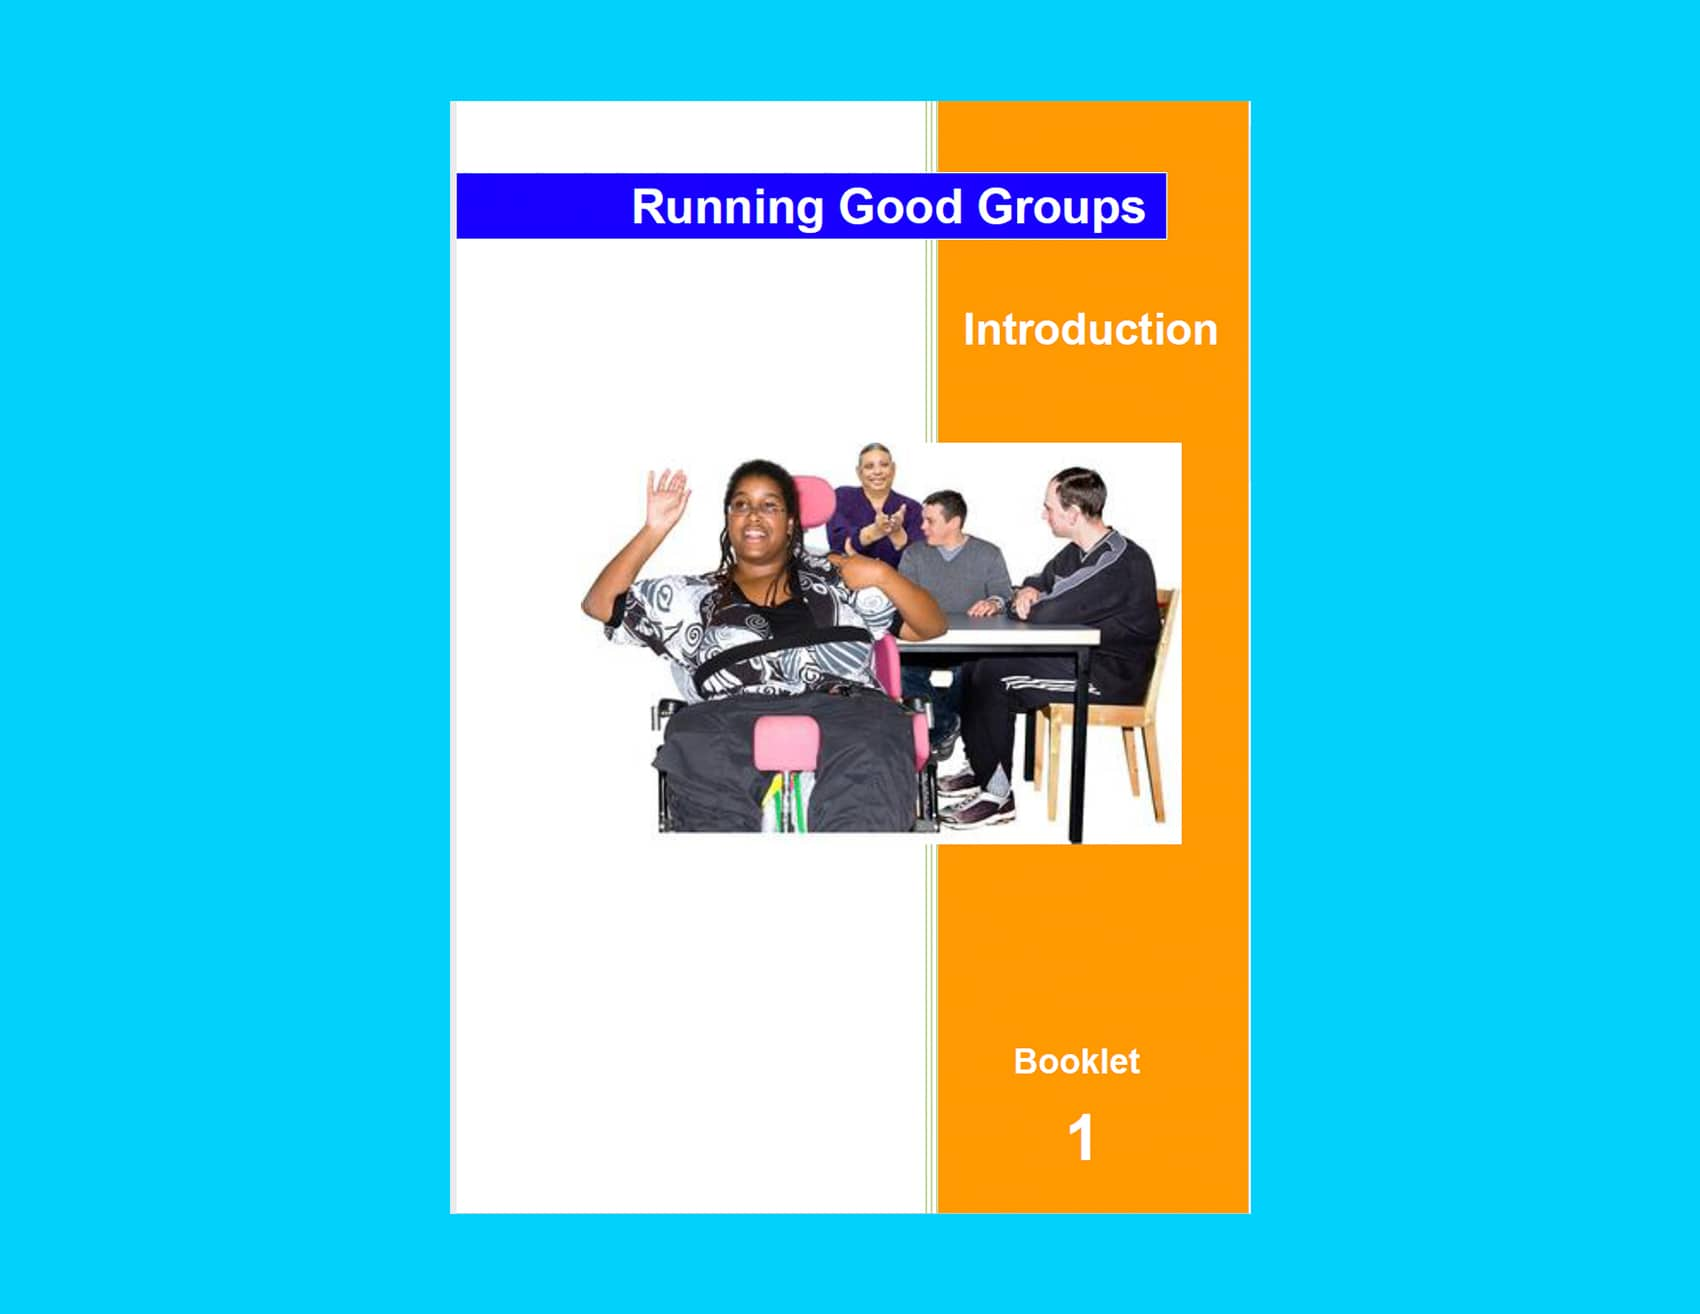 Image for the toolkit on Running Good Groups